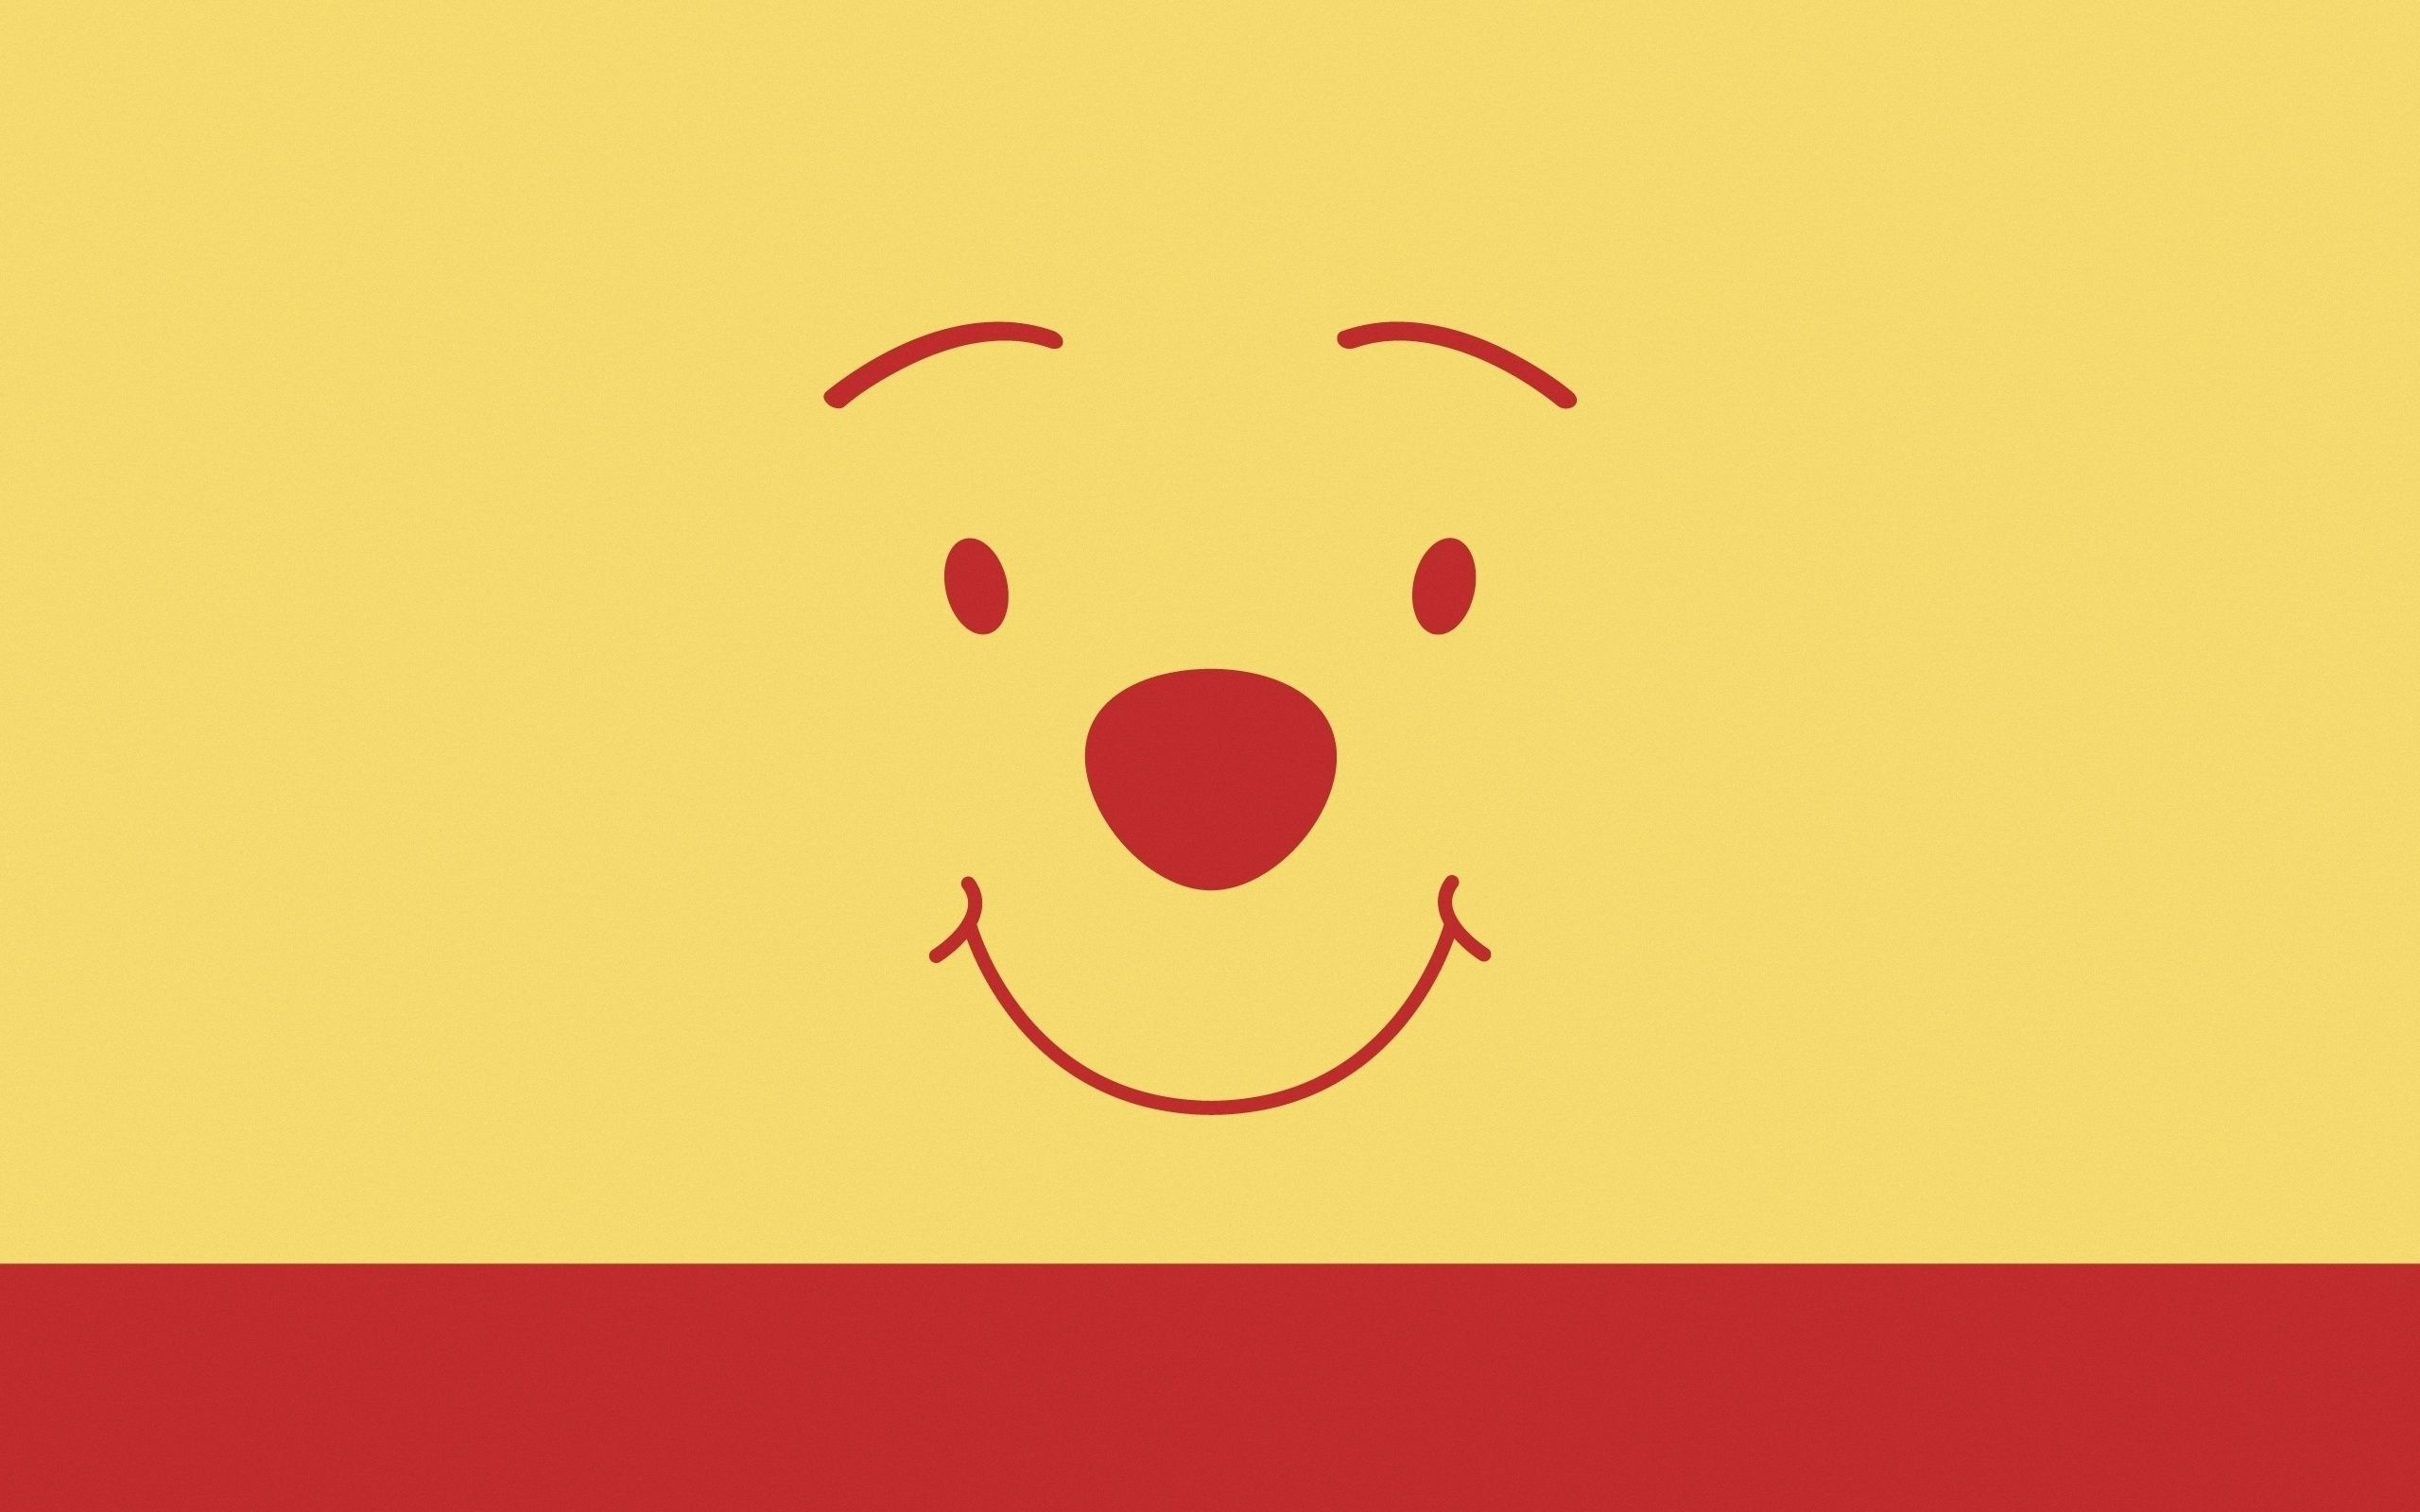 Download wallpaper x pooh bear face drawing minimalism hd download wallpaper x pooh bear face drawing minimalism voltagebd Image collections